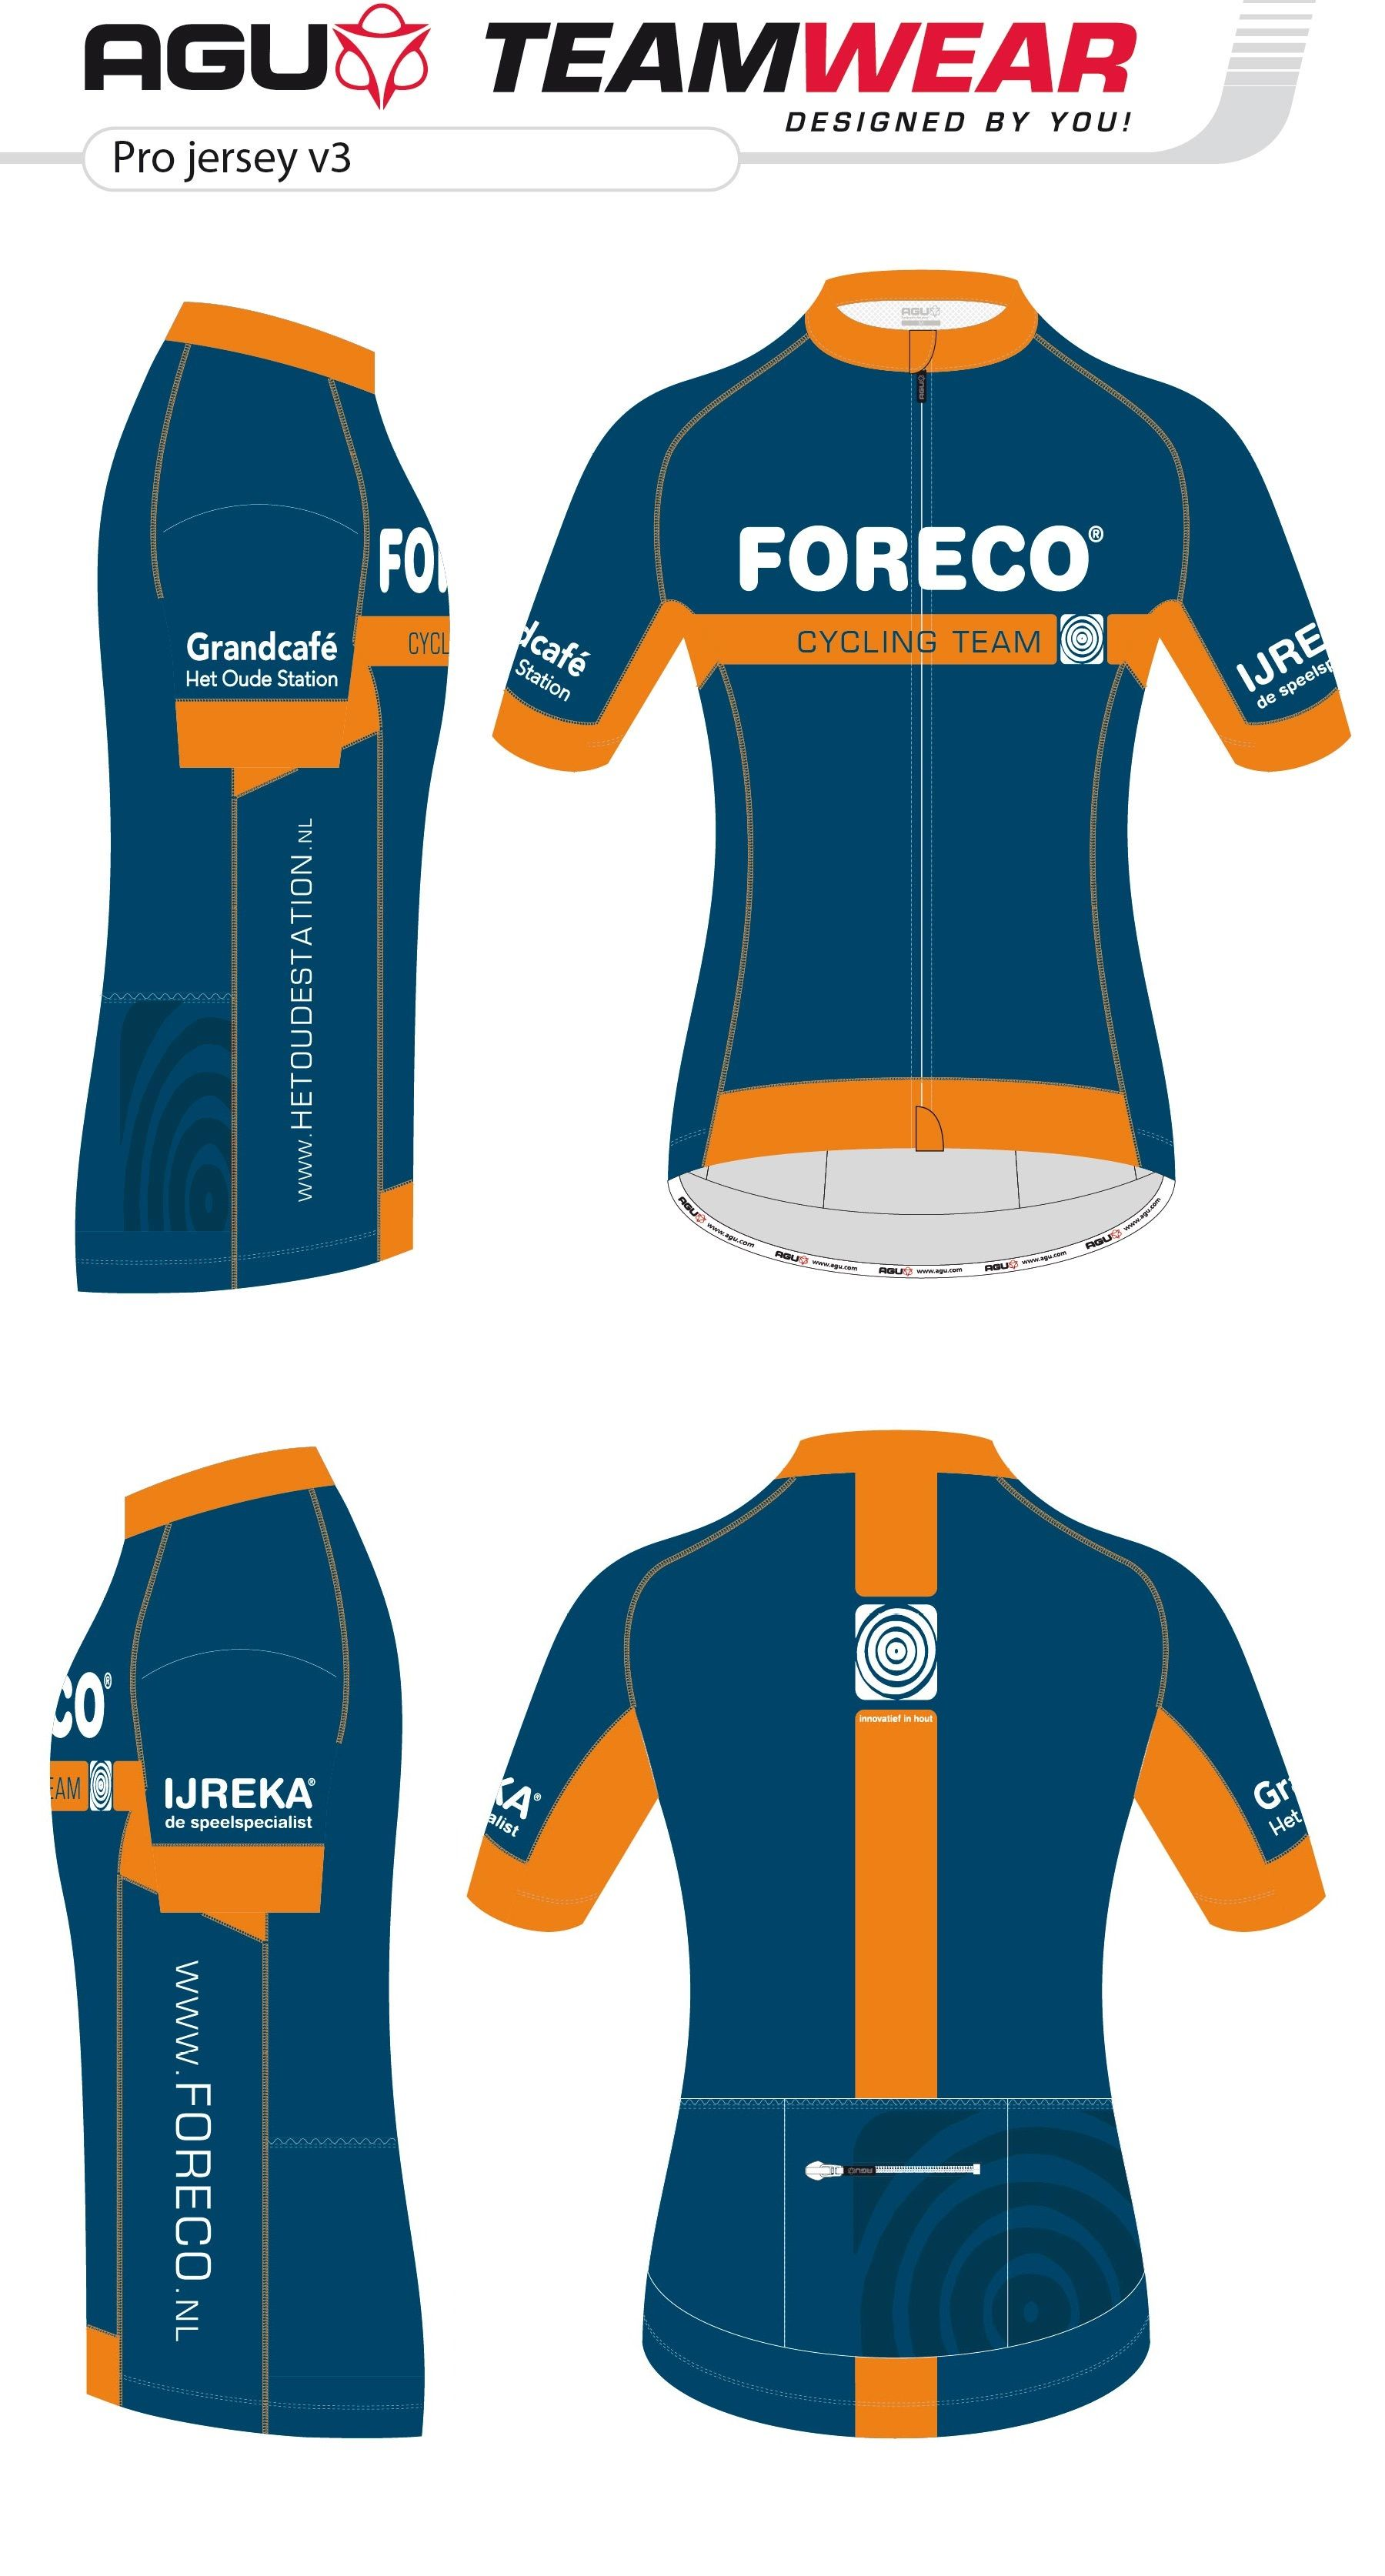 70f5b5b56 DESIGN YOUR OWN cycling jersey by AGU // Customized Cycling Apparel,  designed for Foreco, Dalfsen (The Netherlands). Interested ->  teamwear@agu.nl